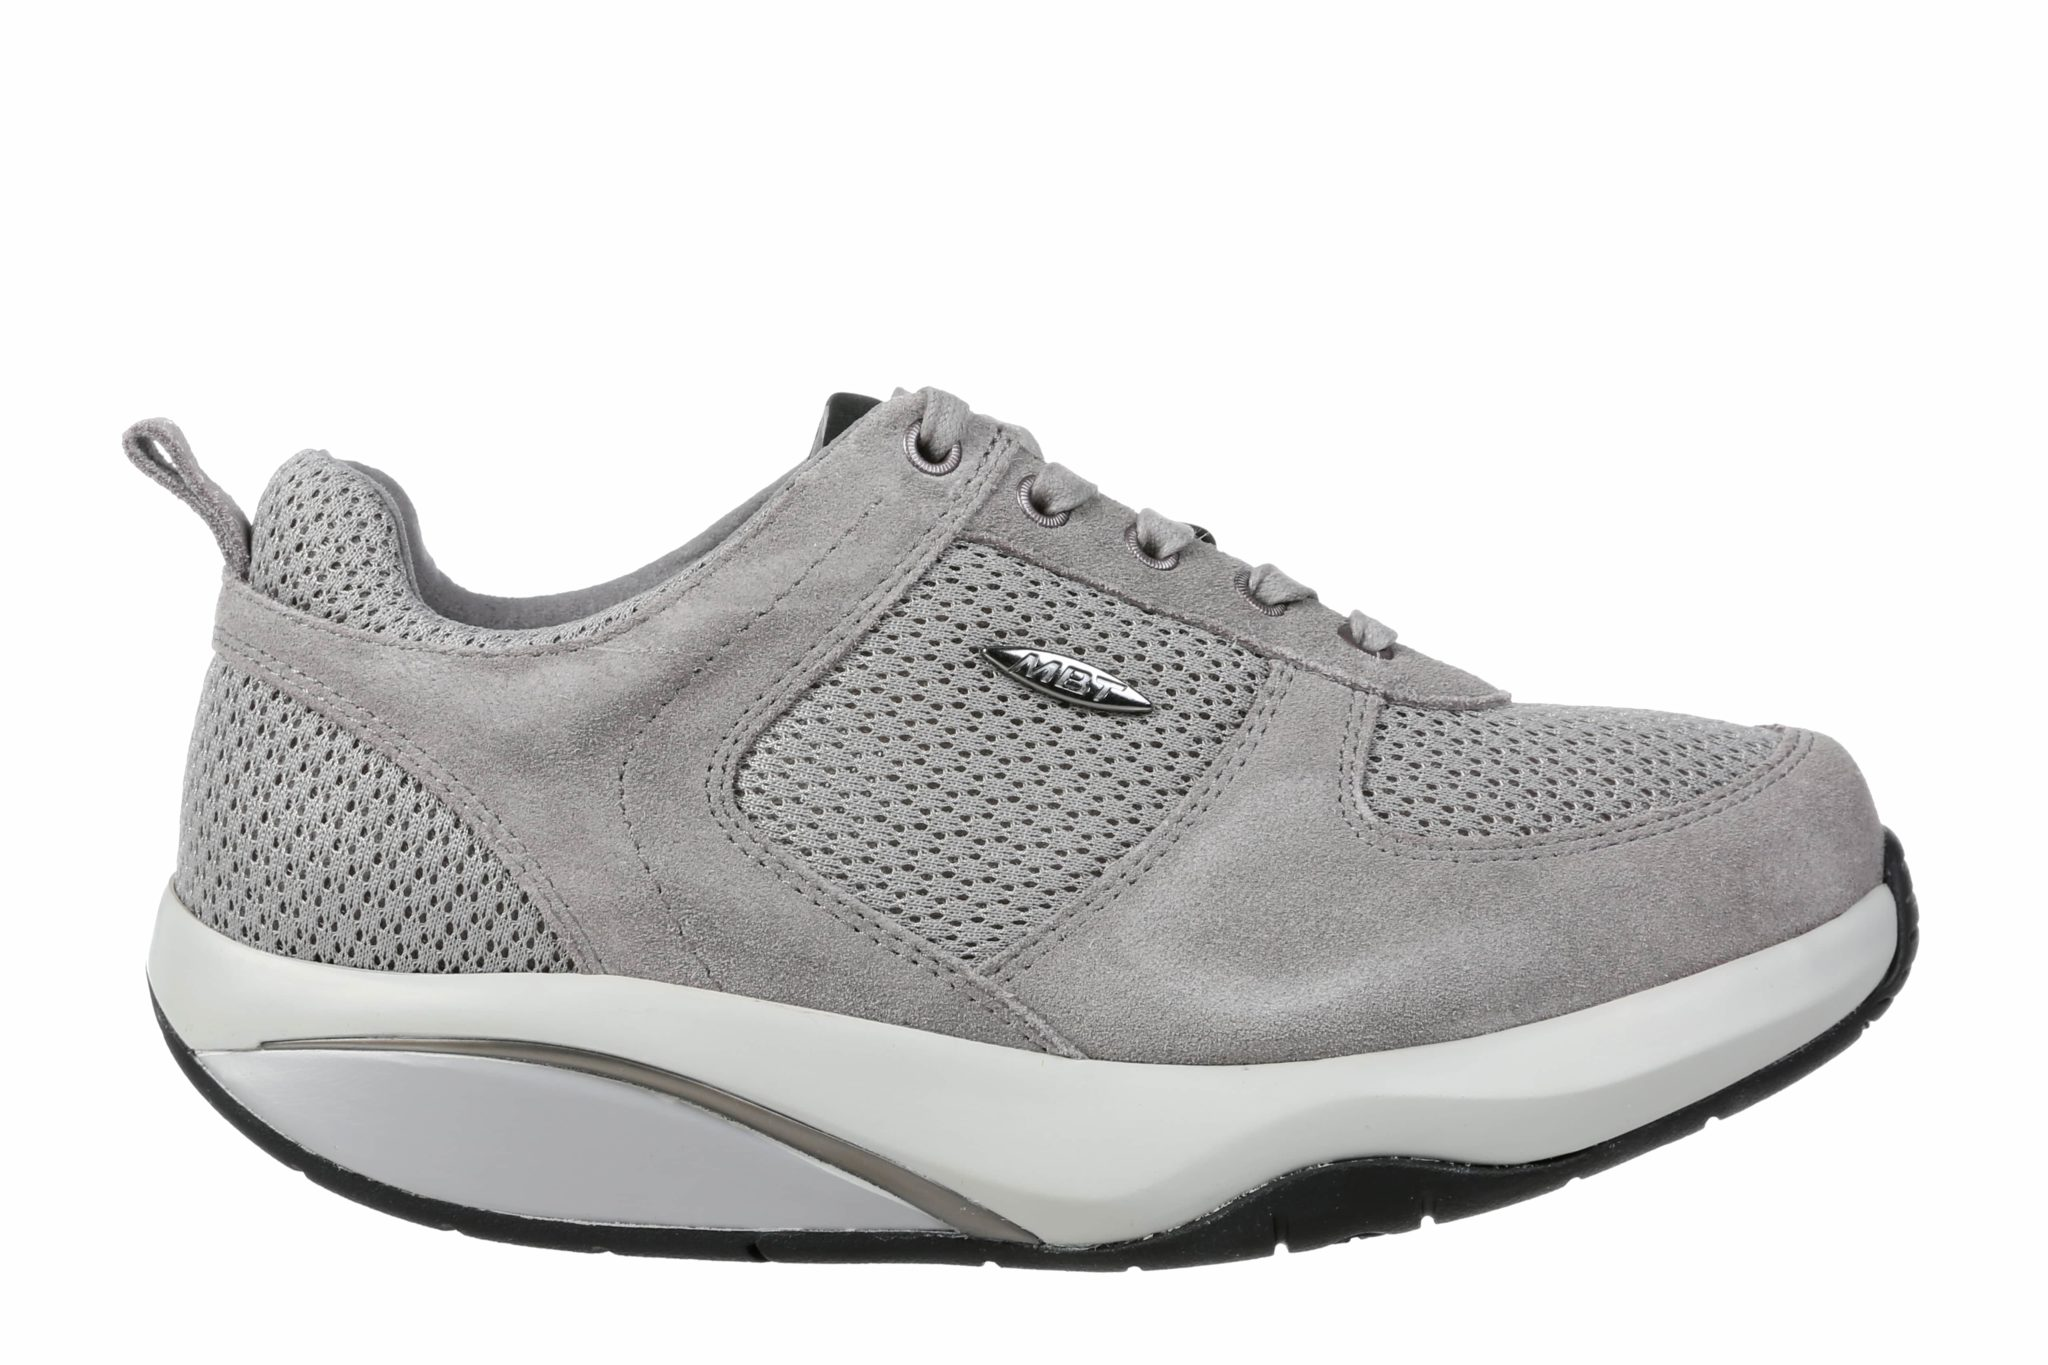 MBT DONNA ANATAKA W GREY 400355 20D LATERAL min